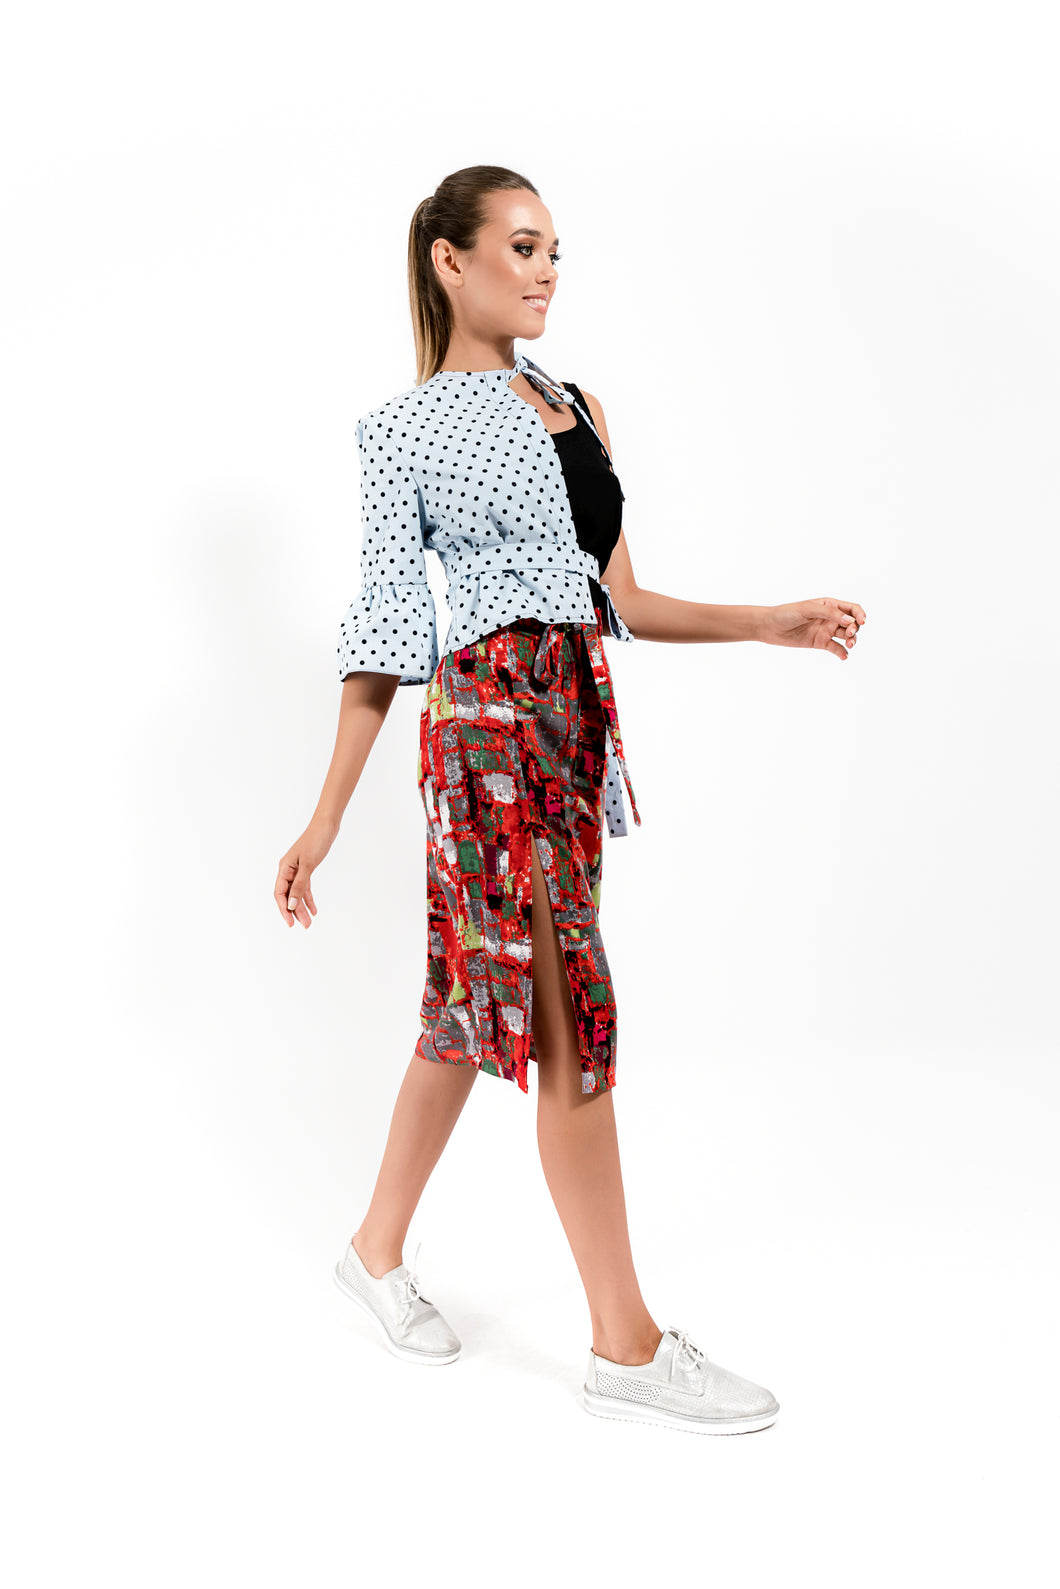 Red Printed Skirt with a  Cut Leg - Velmoft